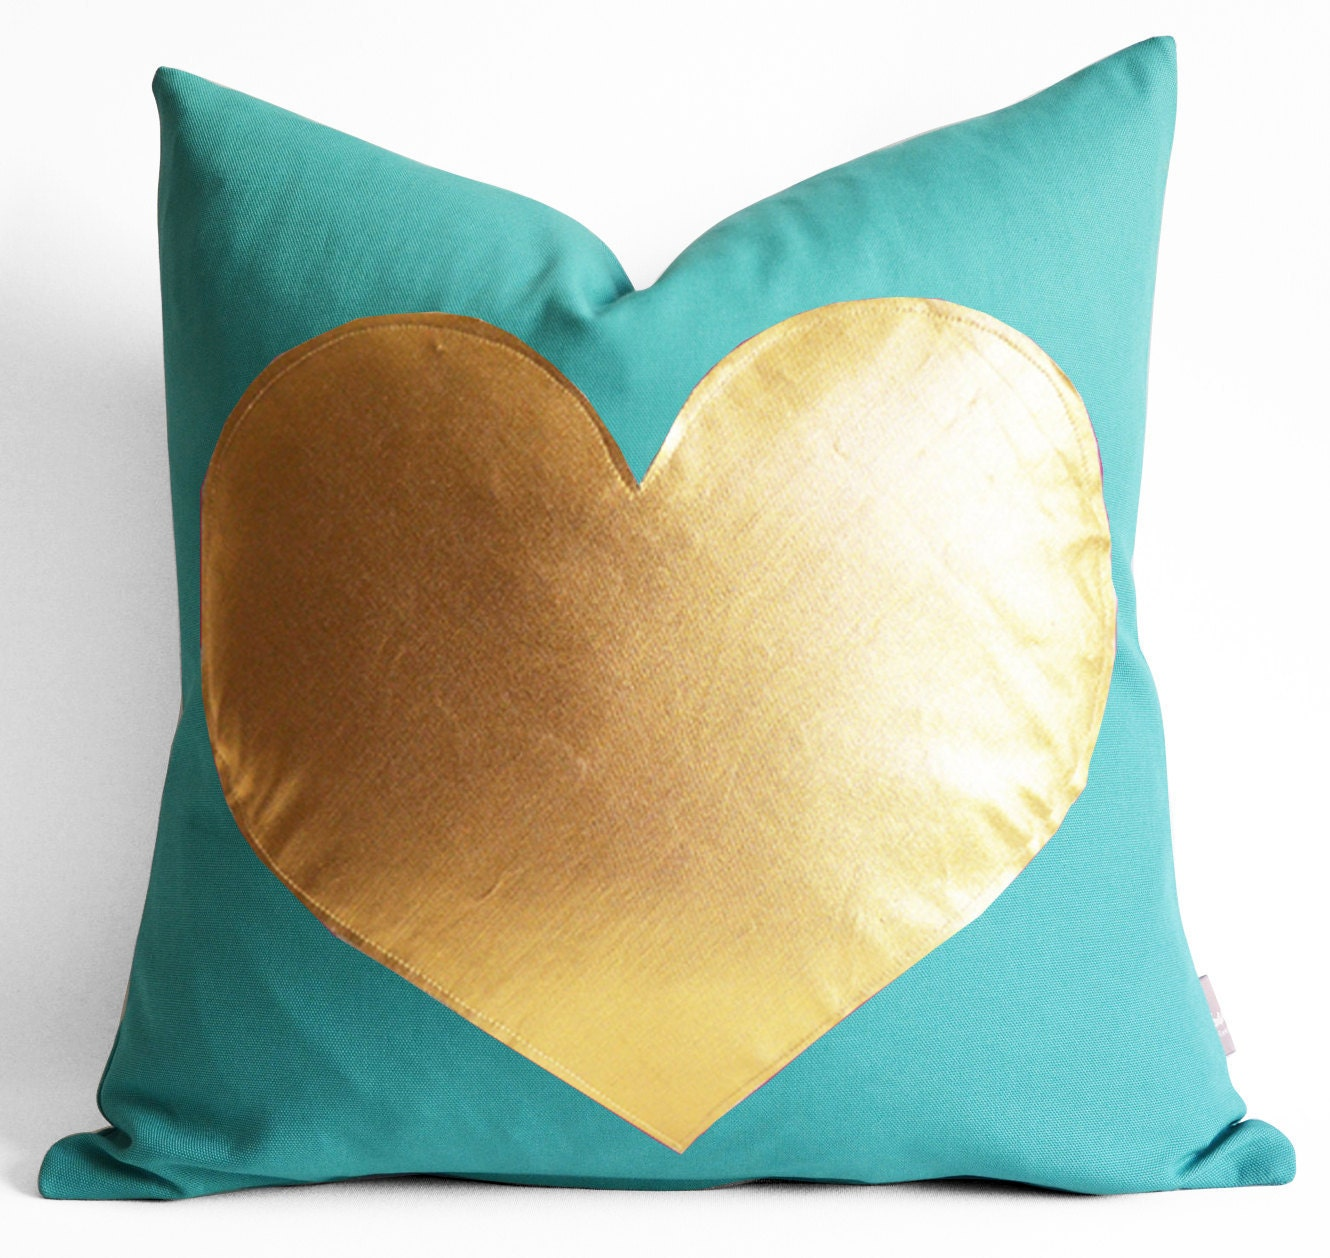 Personalized Butterfly Heart Throw Pillow Cover : NEW Turquoise and SILVER Pillows Gold Foil Heart Pillow by sukan